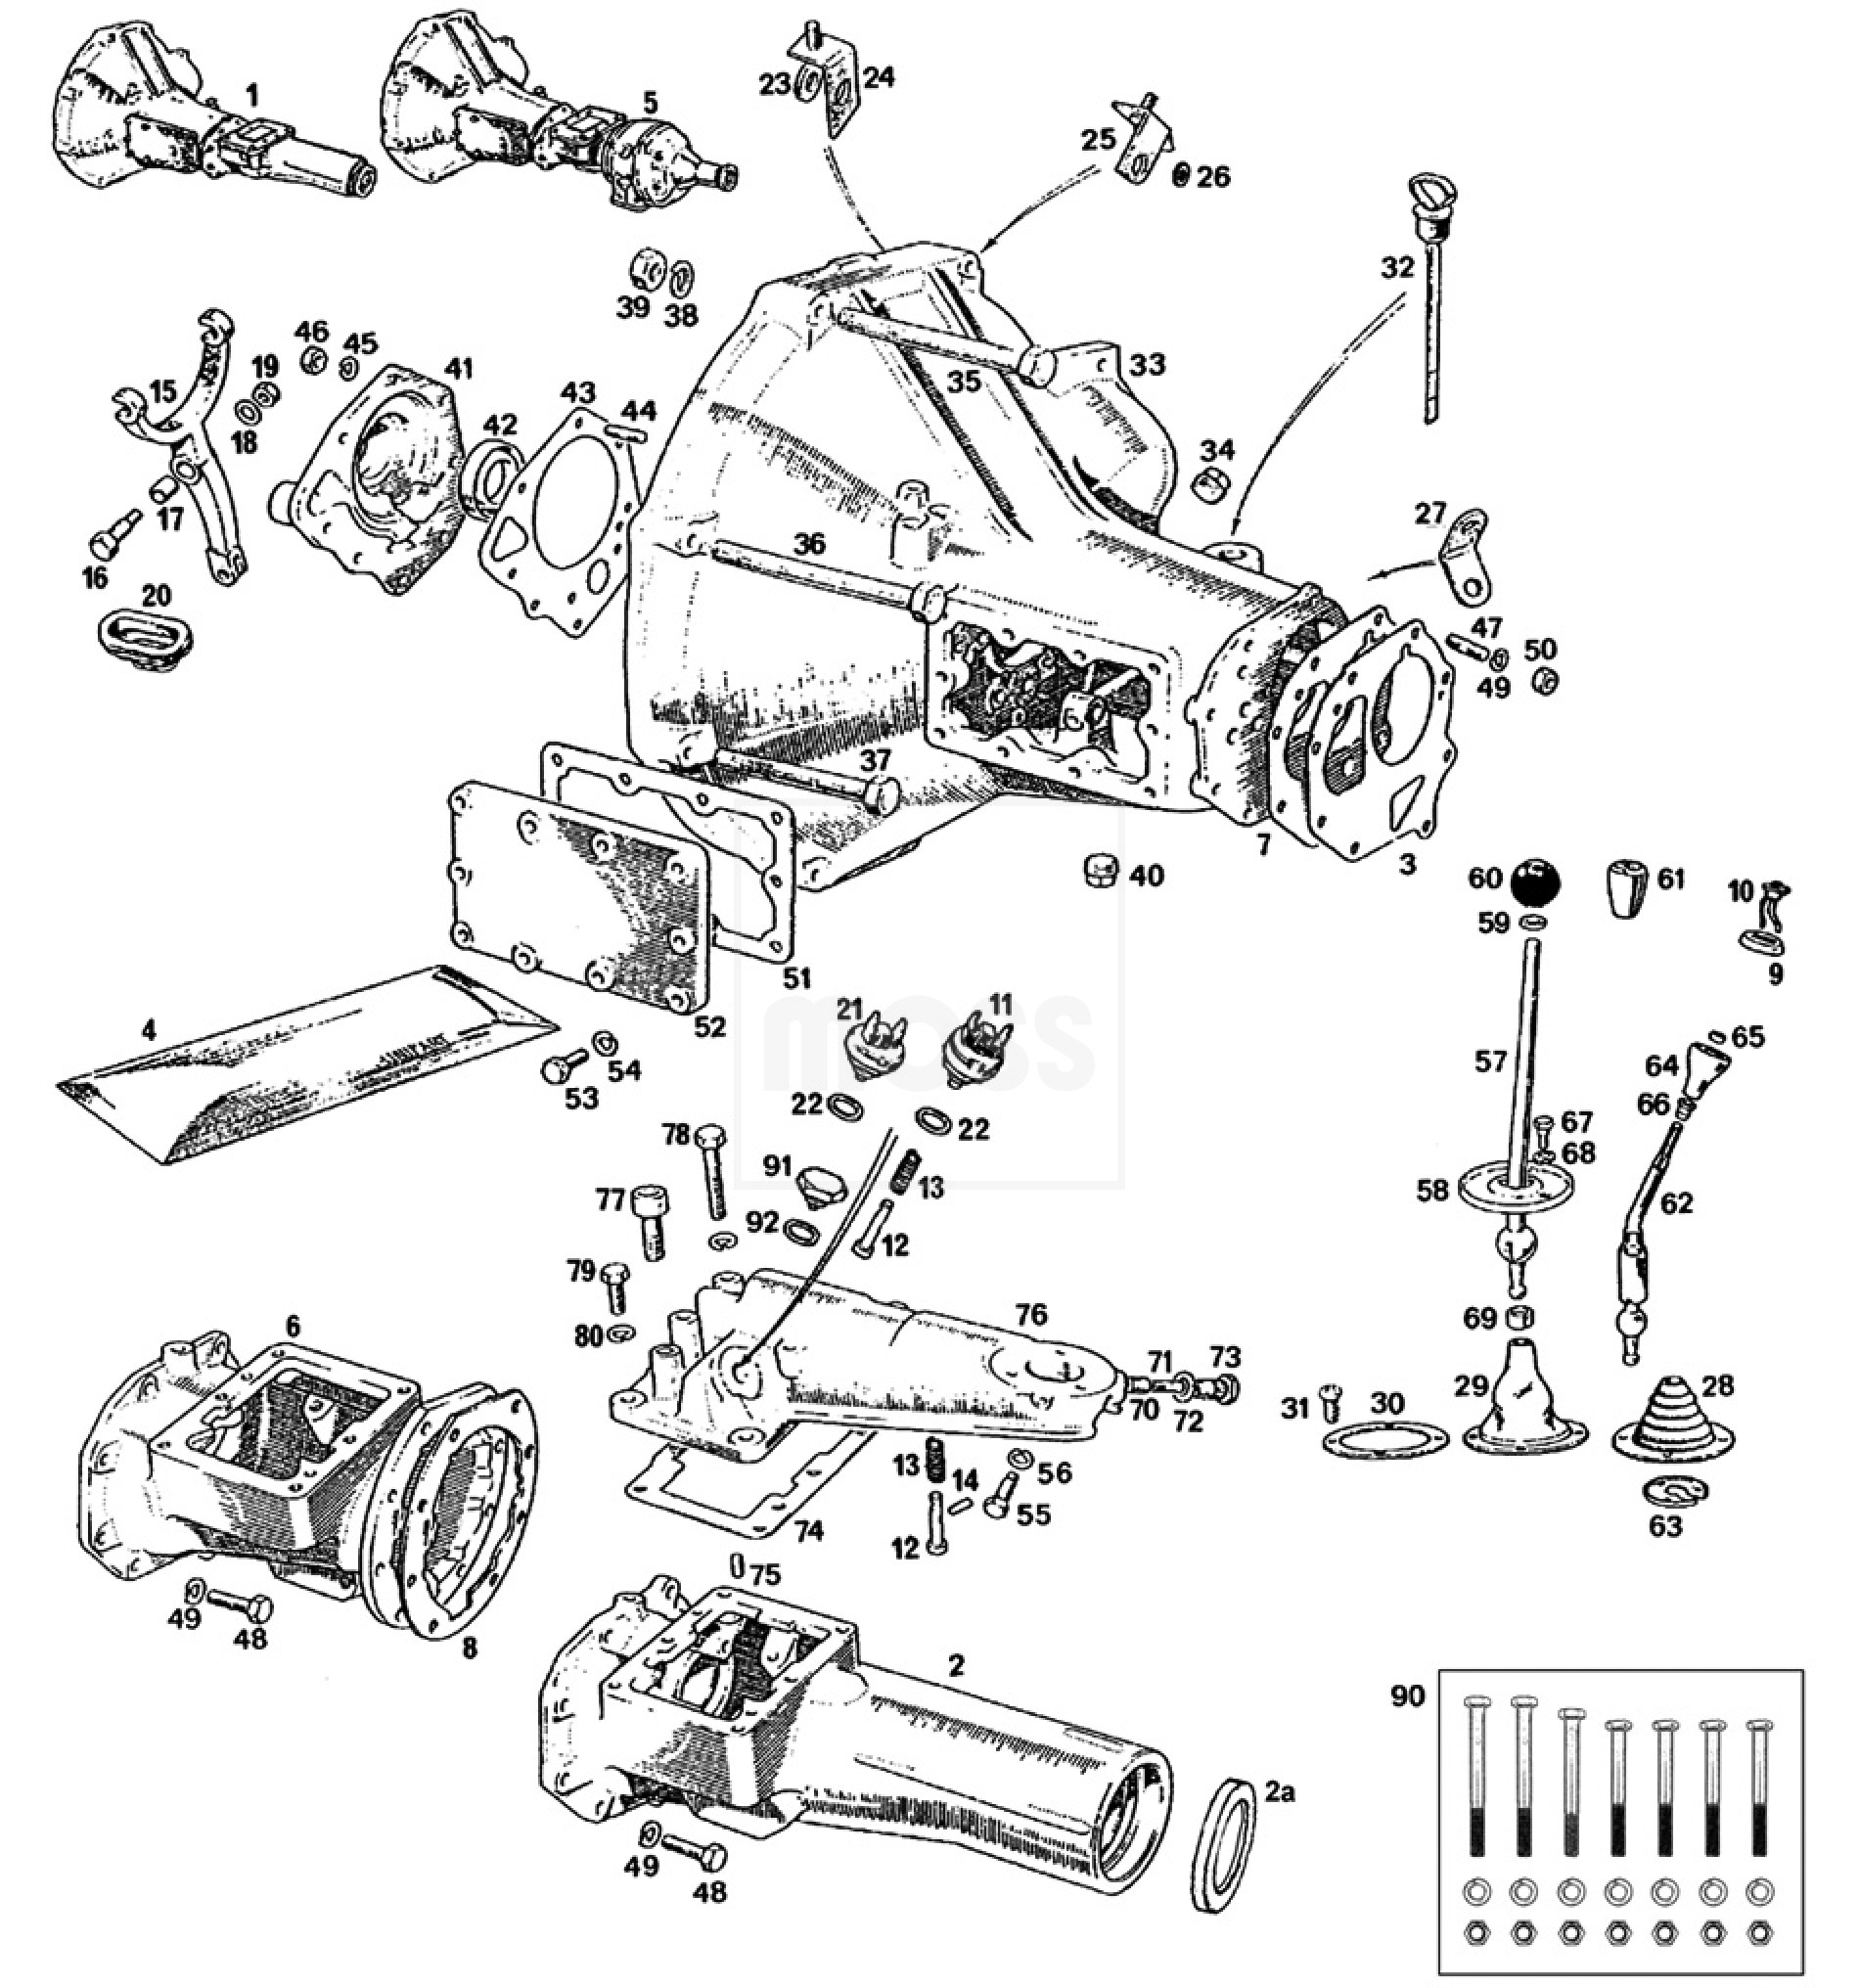 External Gearbox 4 Synchro